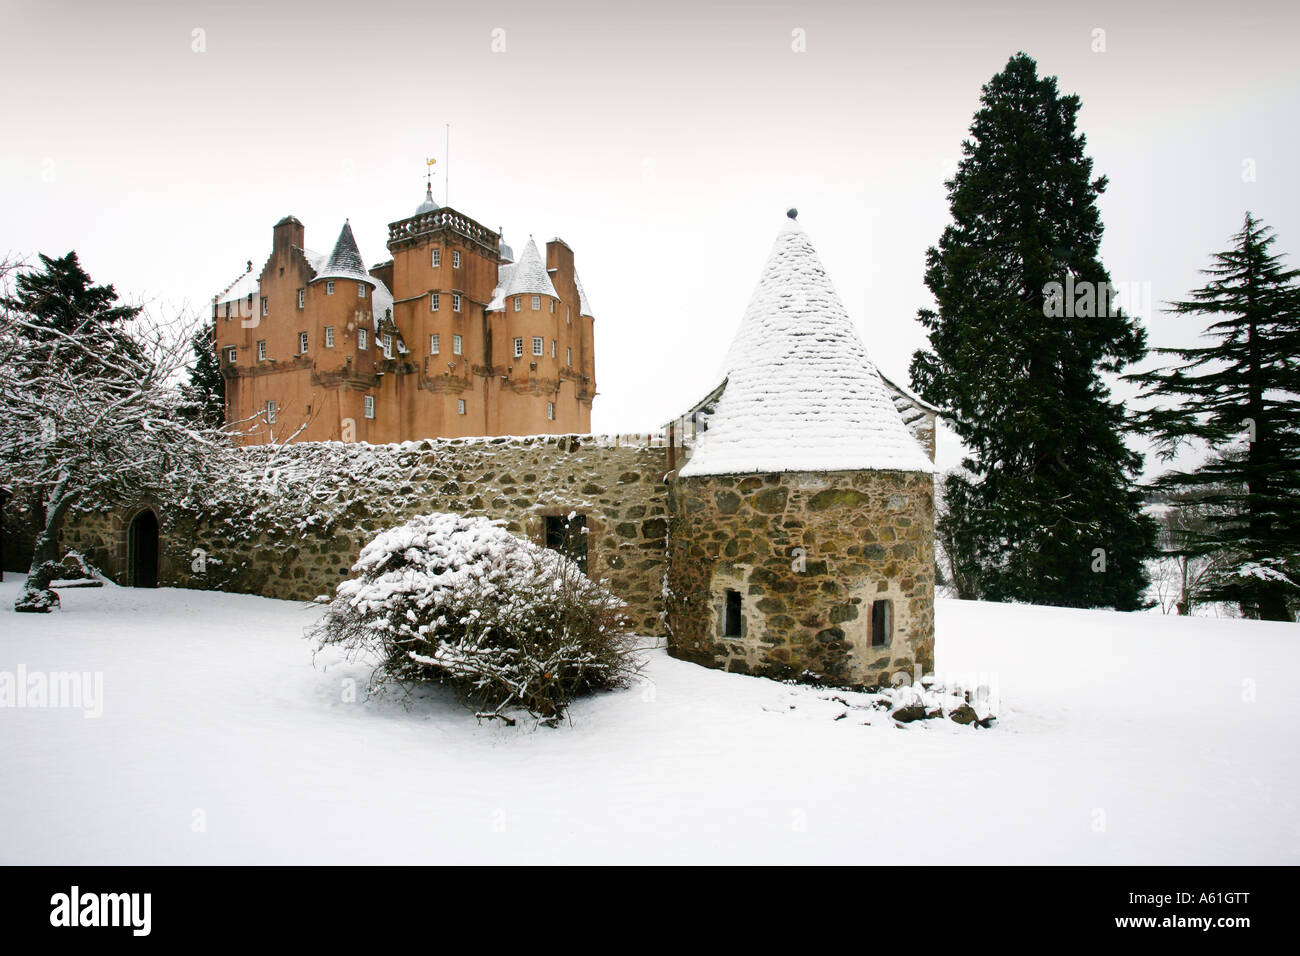 A winter scenic image of Craigievar Castle near Aberdeen in the North East of Scotland - Stock Image